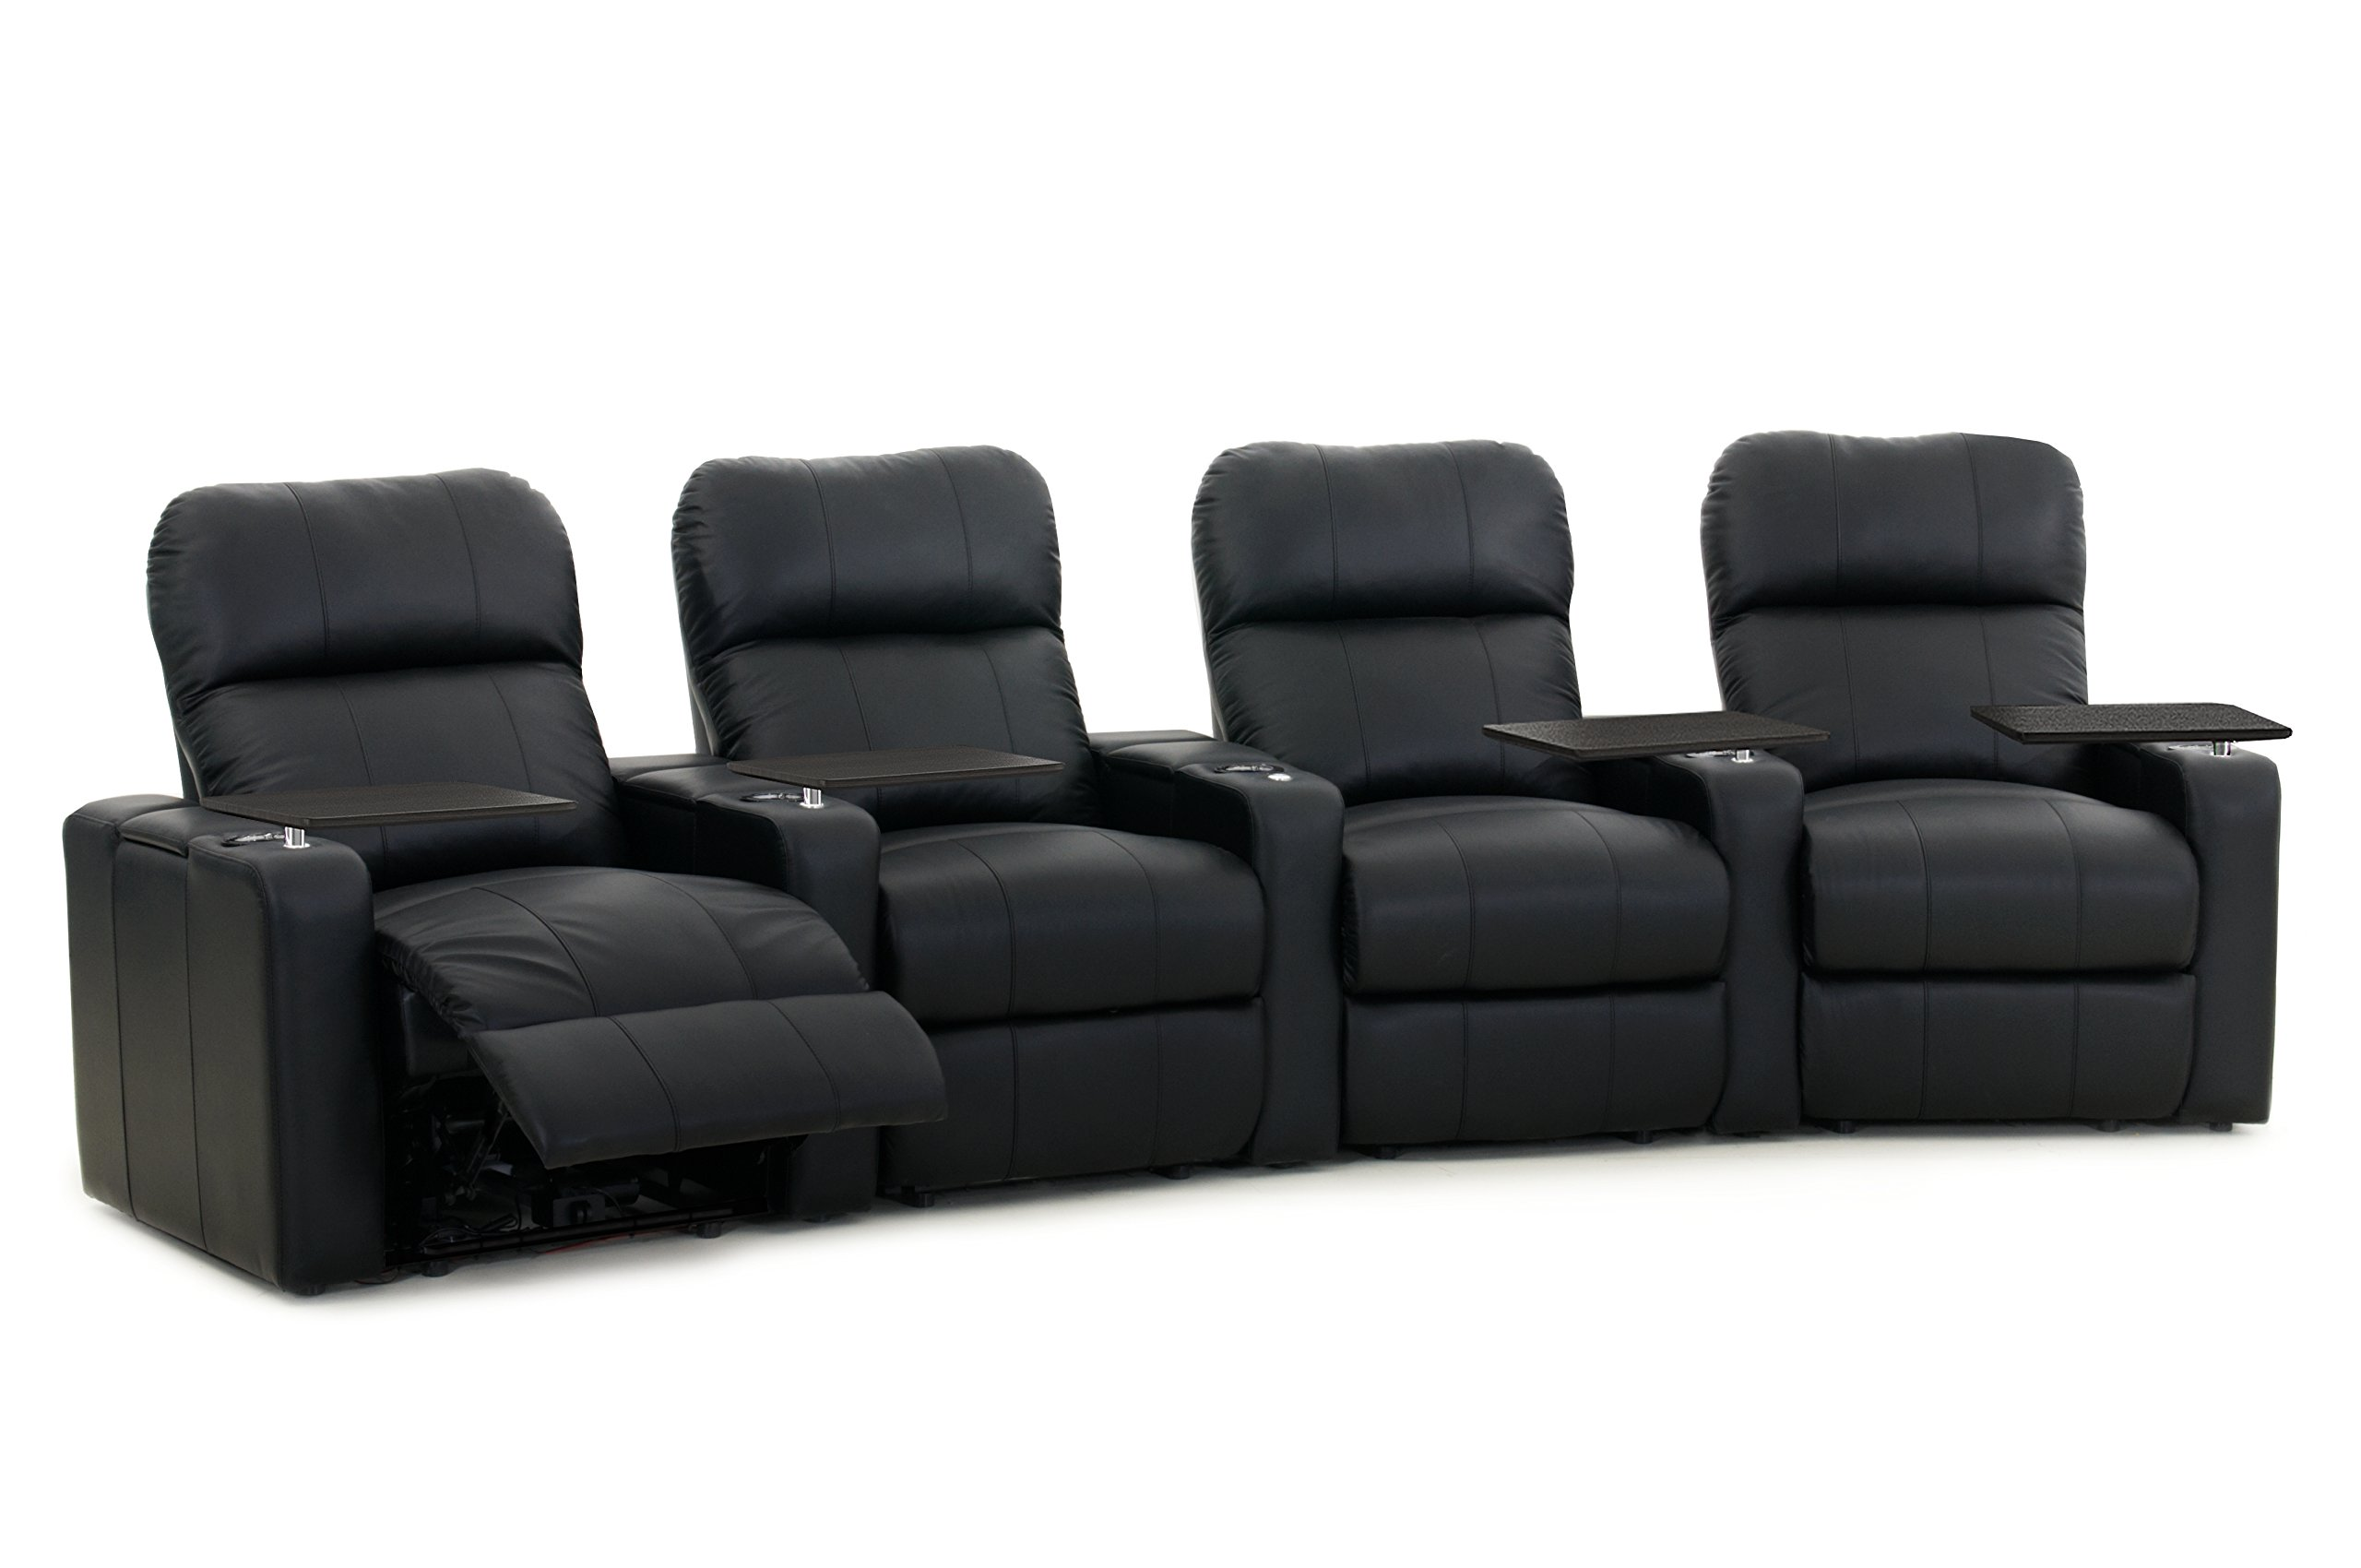 Octane Turbo XL700 Row of 4 Seats, Curved Row in Black Bonded Leather with Manual Recline